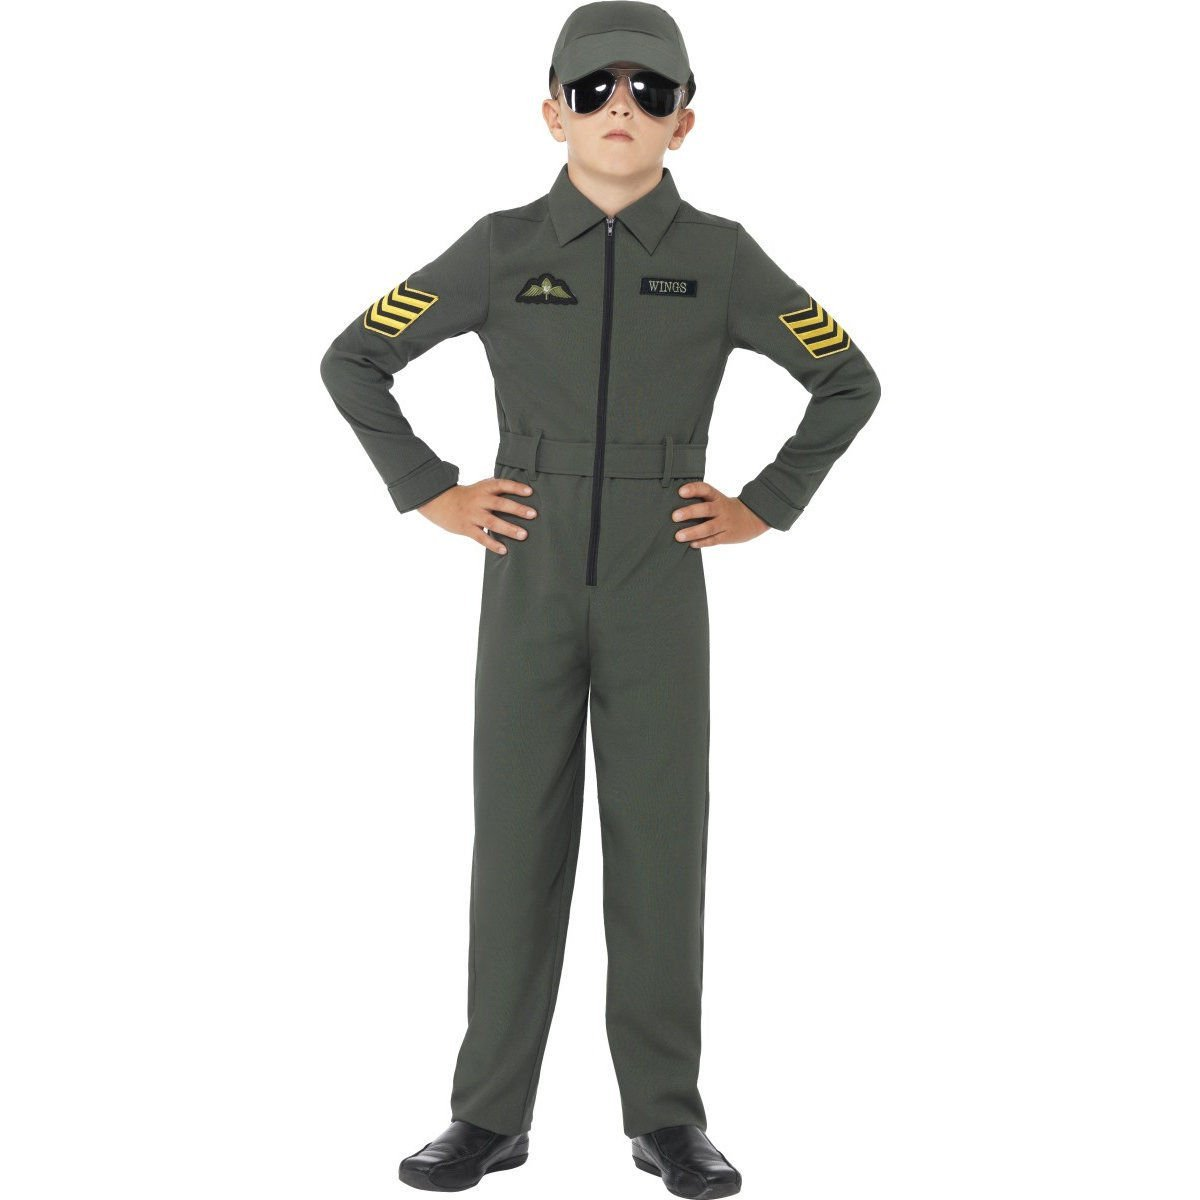 Aviator costume boys 41091